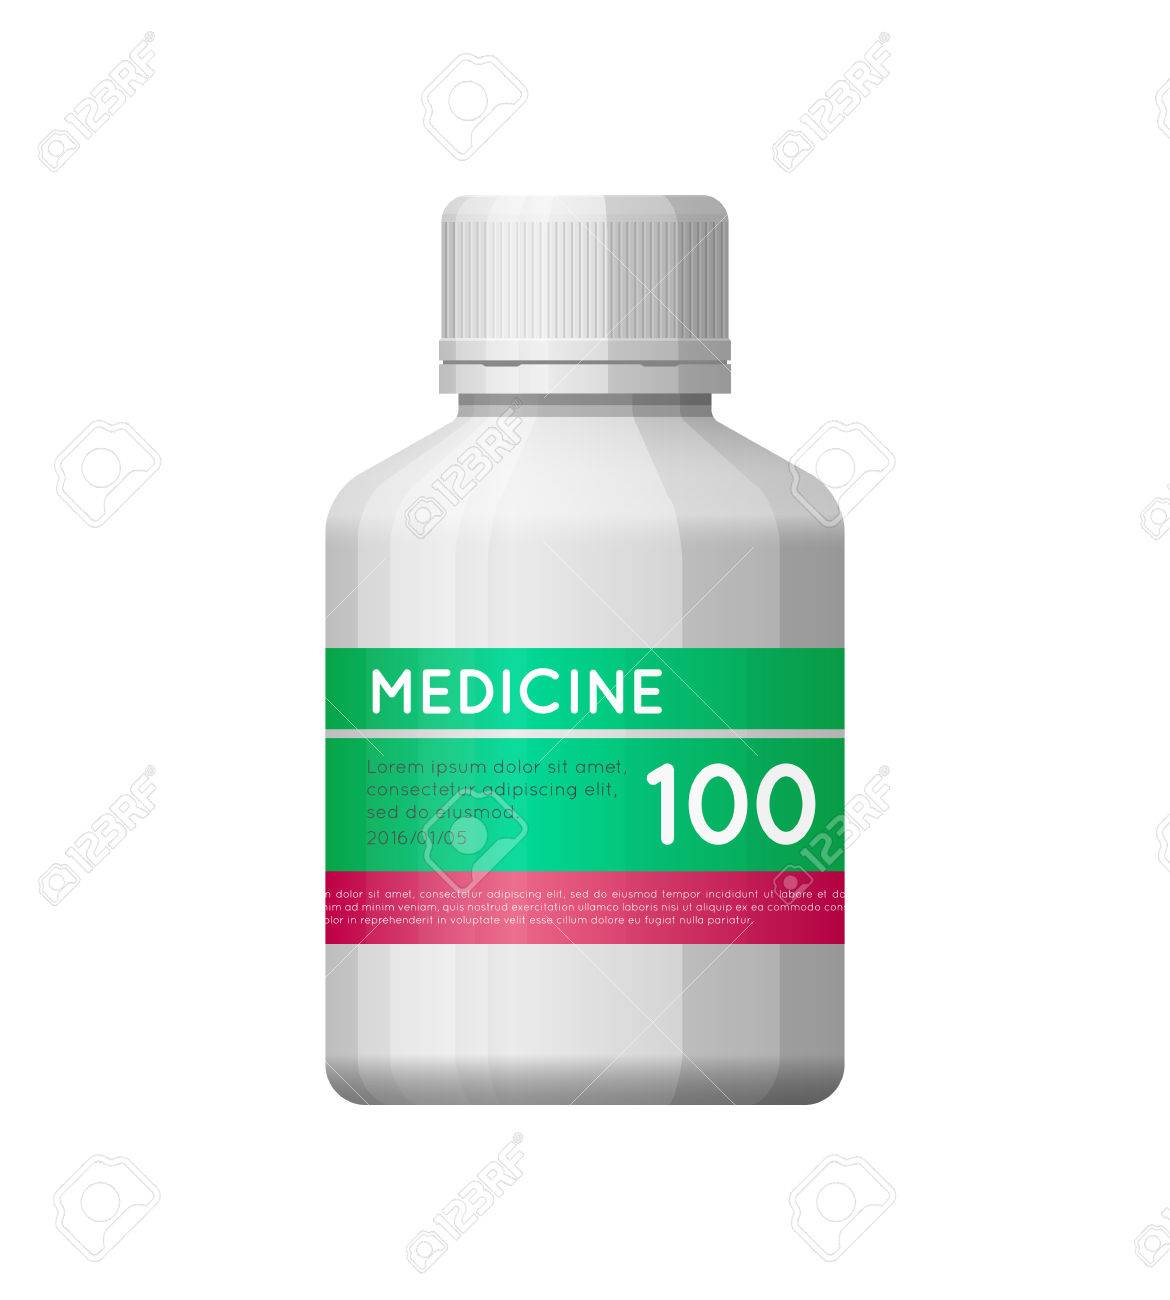 Medicine White Bottle With Label Empty Plasric Bottle For Drugs